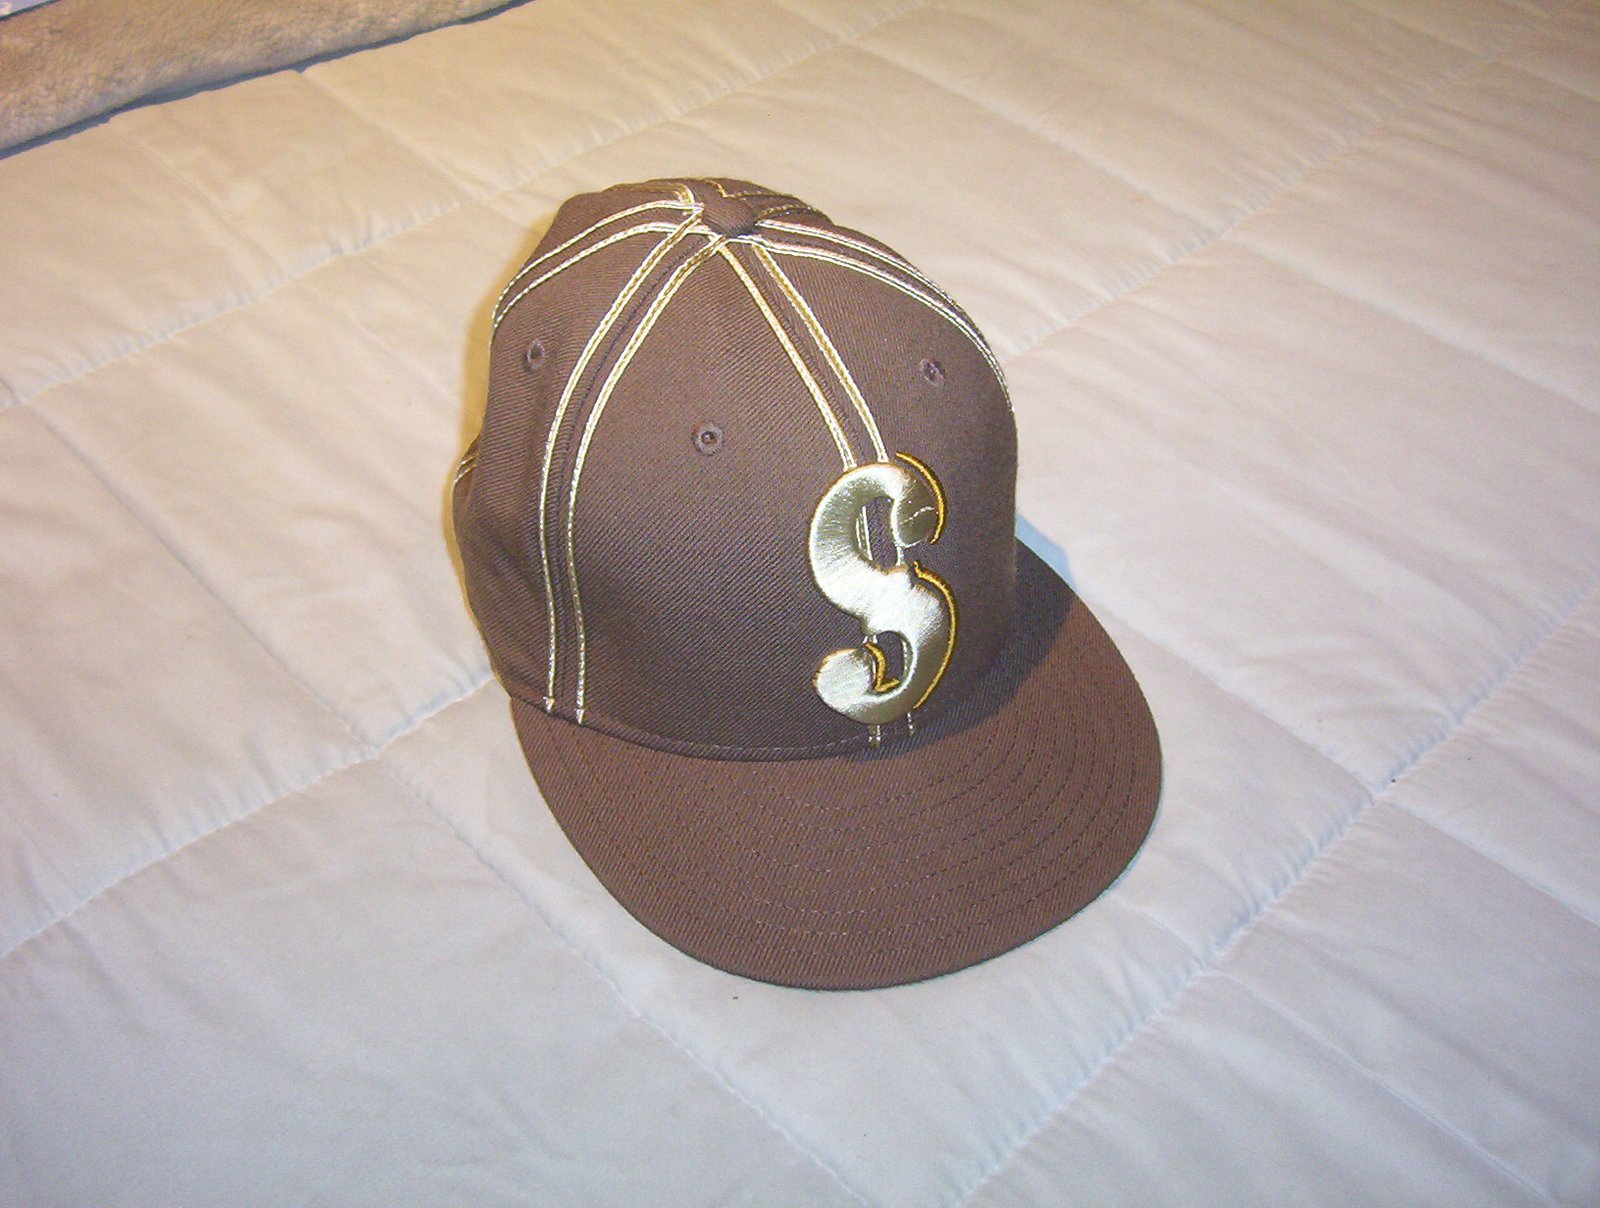 Siver Ball Cap